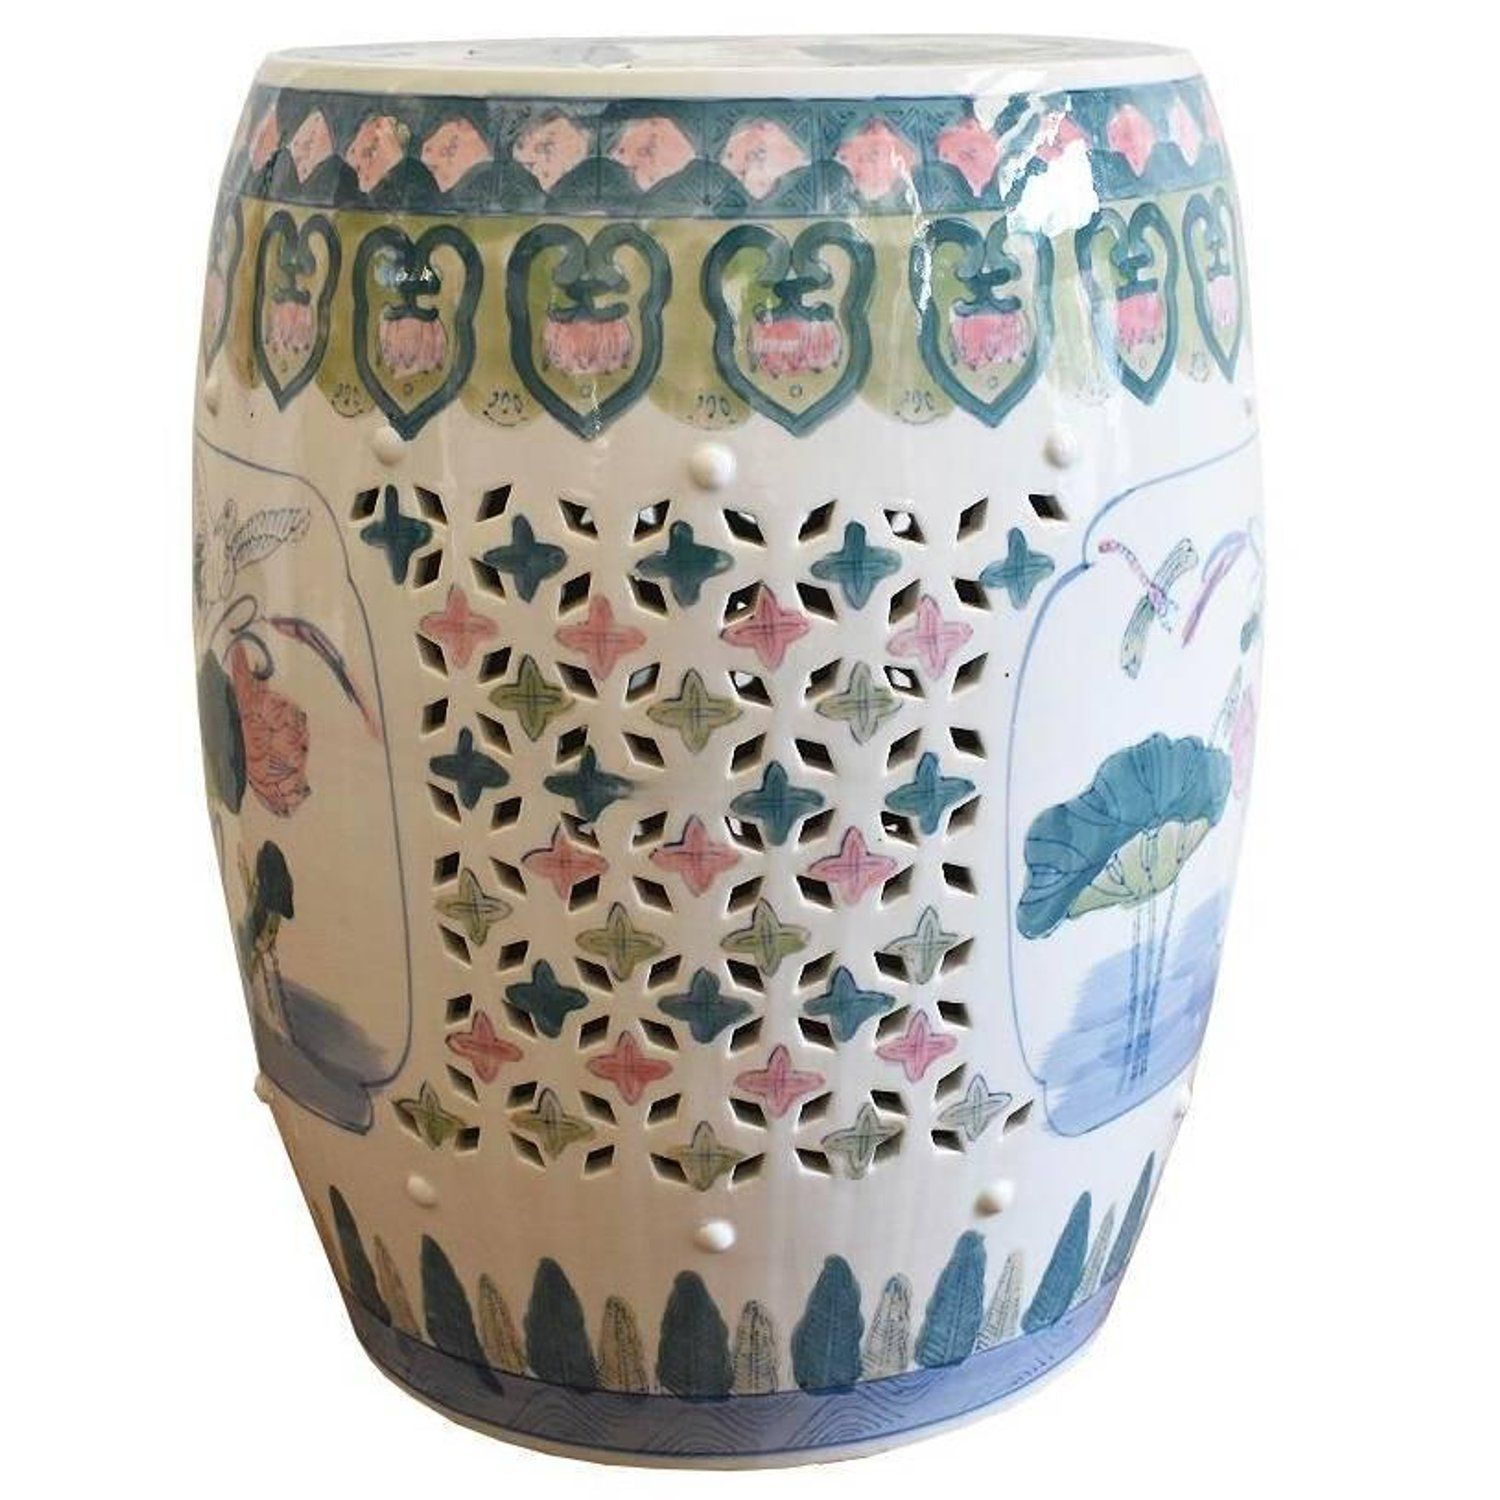 Legends of Asia Asian Traditional Chinese Blush Pink Porcelain Decorative Garden Stool